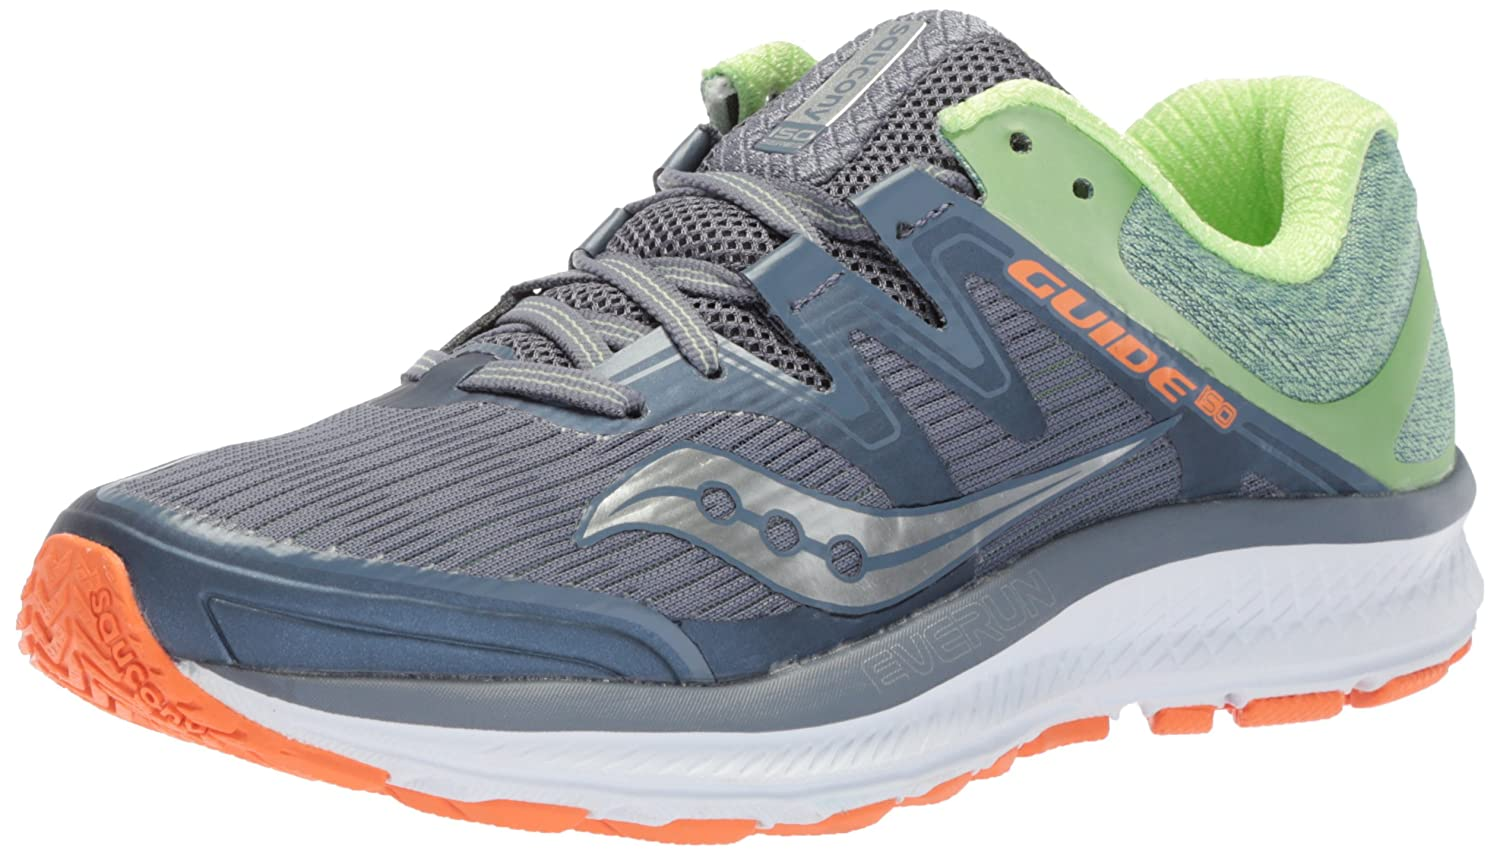 Saucony Women's Guide Iso Running Shoe B072QDTCXR 10.5 B(M) US|Grey/Mint